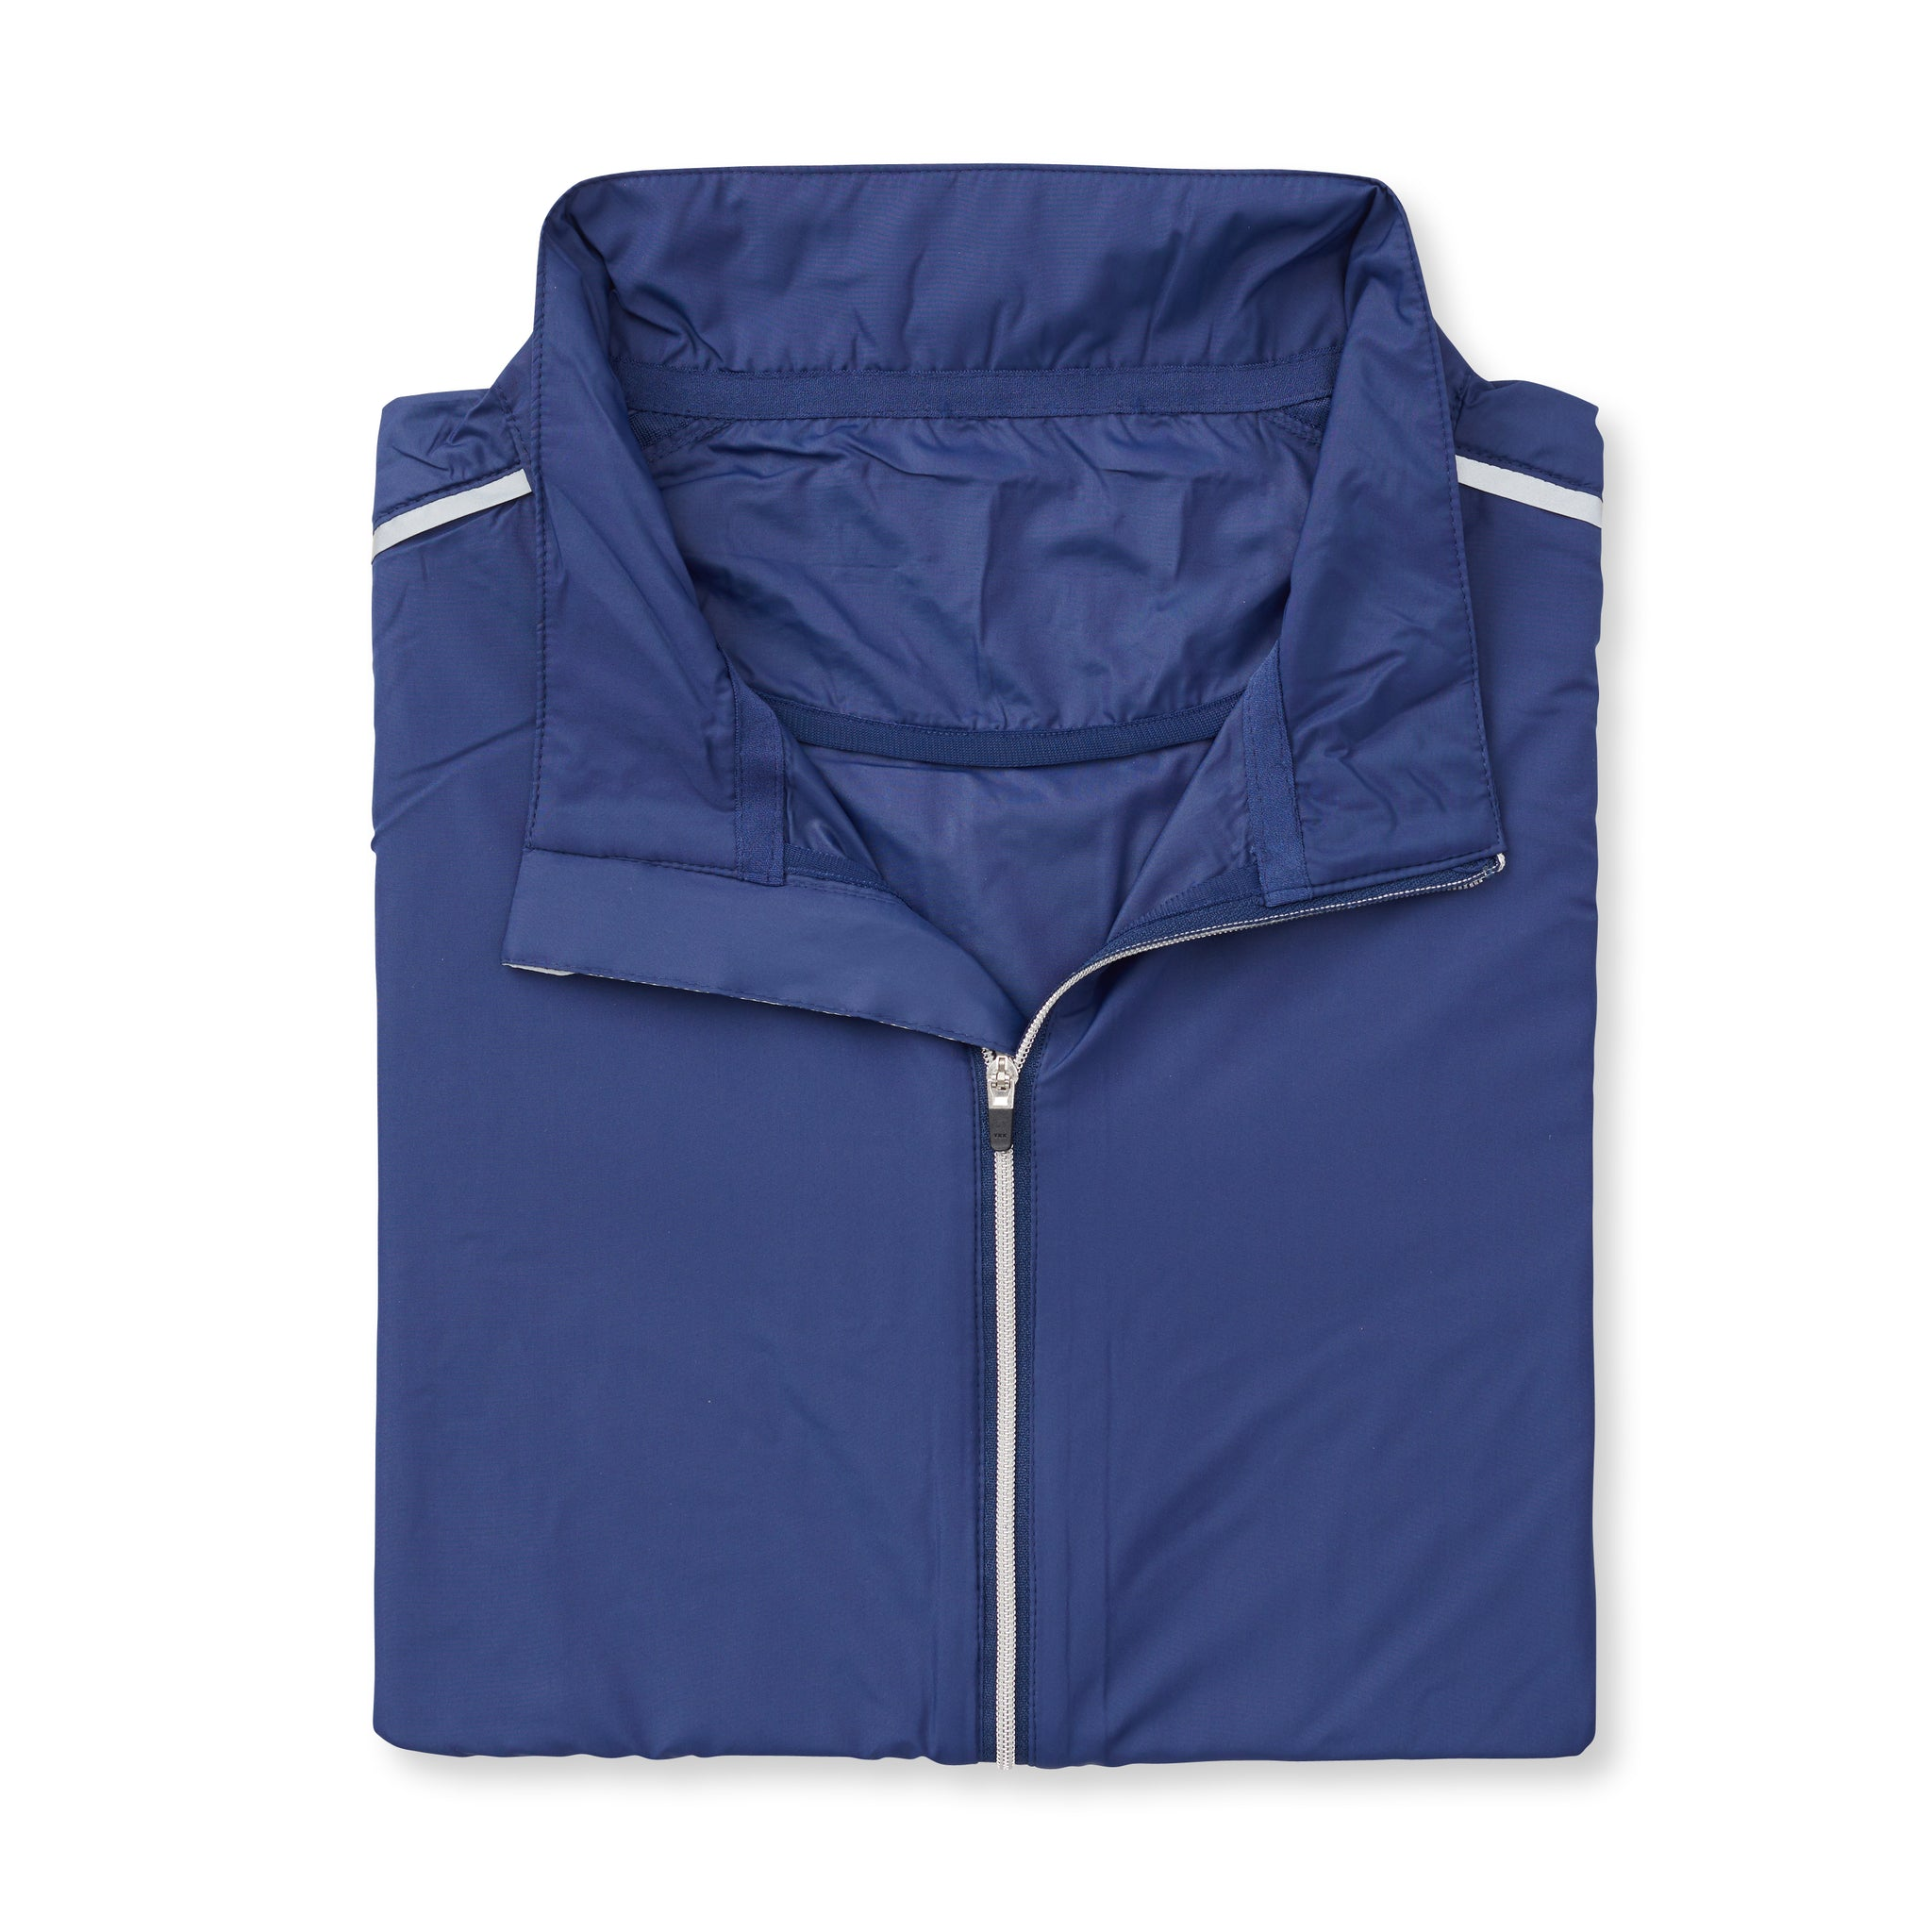 THE WOMEN'S AVIATOR FULL ZIP TEC WINDWEAR - Navy IS64905FZW